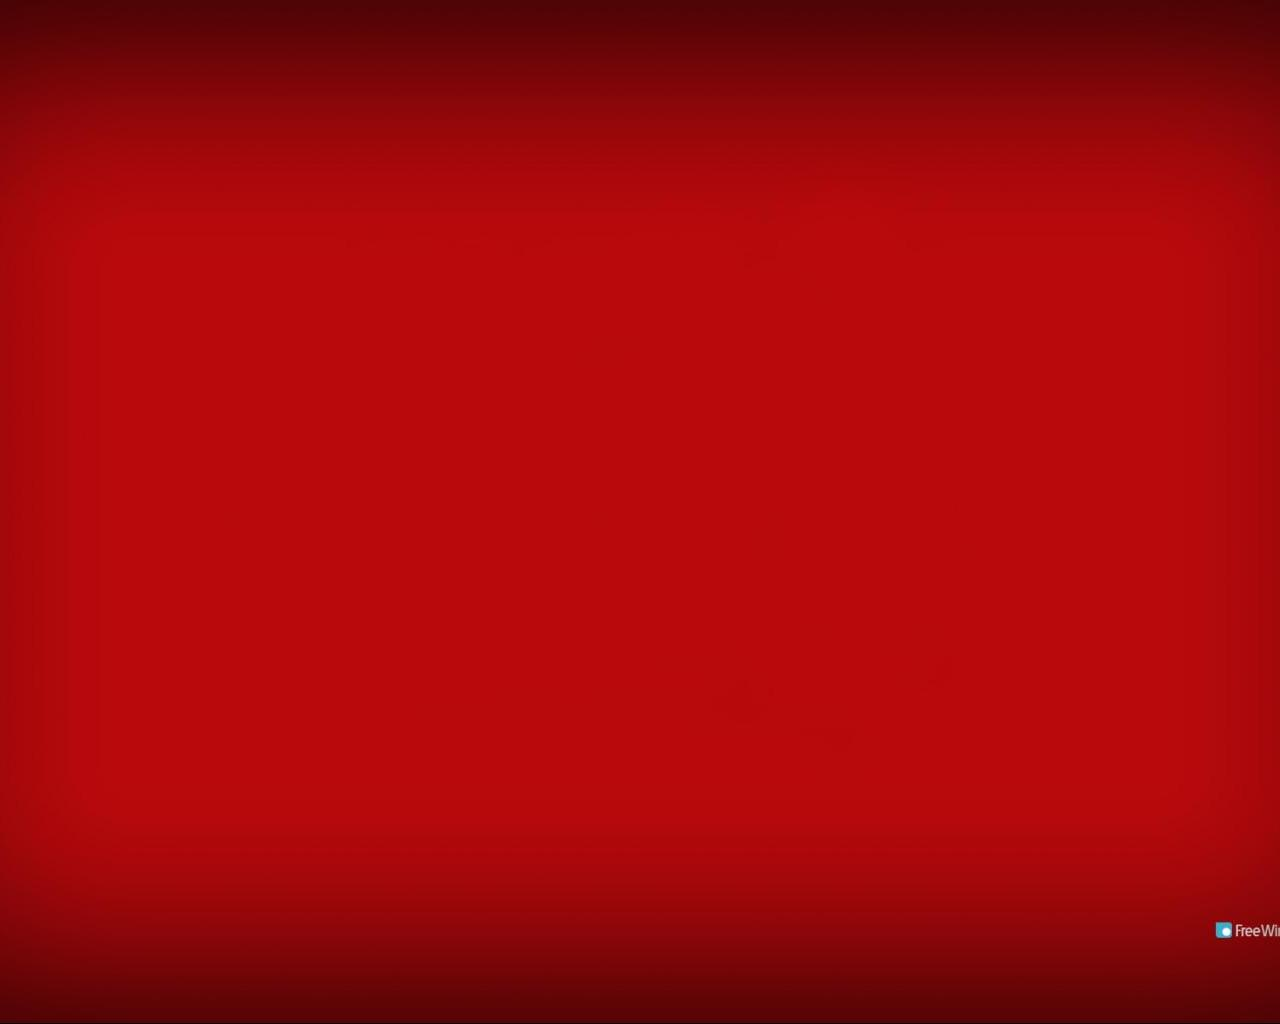 1280x1024 Red Computer Wallpaper Solid Red Wallpaper 1280x1024